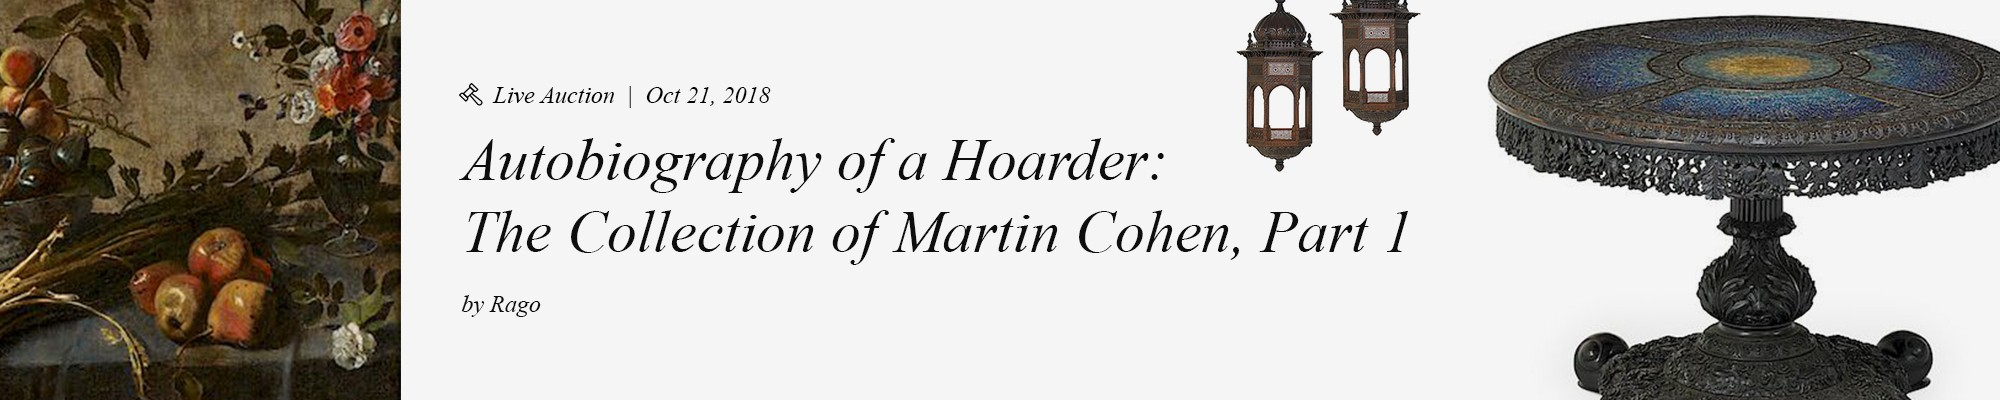 autobiography-of-a-hoarder-the-collection-of-martin-cohen-part-1-rago